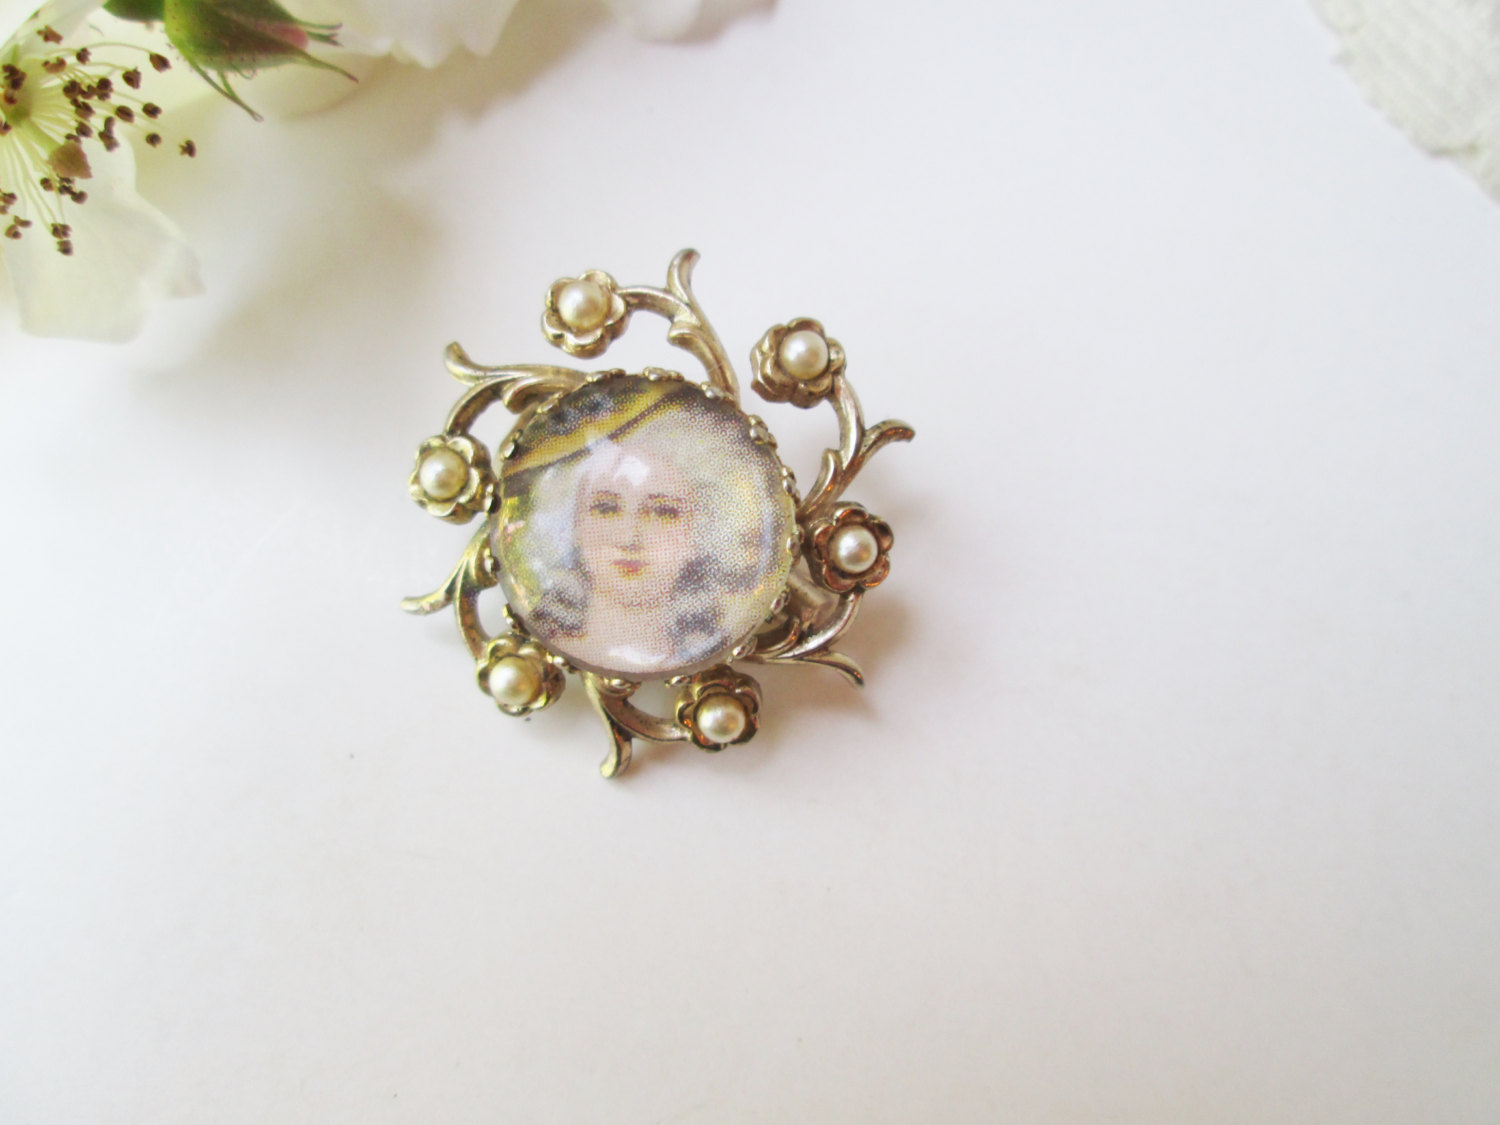 Coro Marie Antoinette Brooch Vintage Cameo Pin Gold w Pearls Dot Style Portrait  image 4